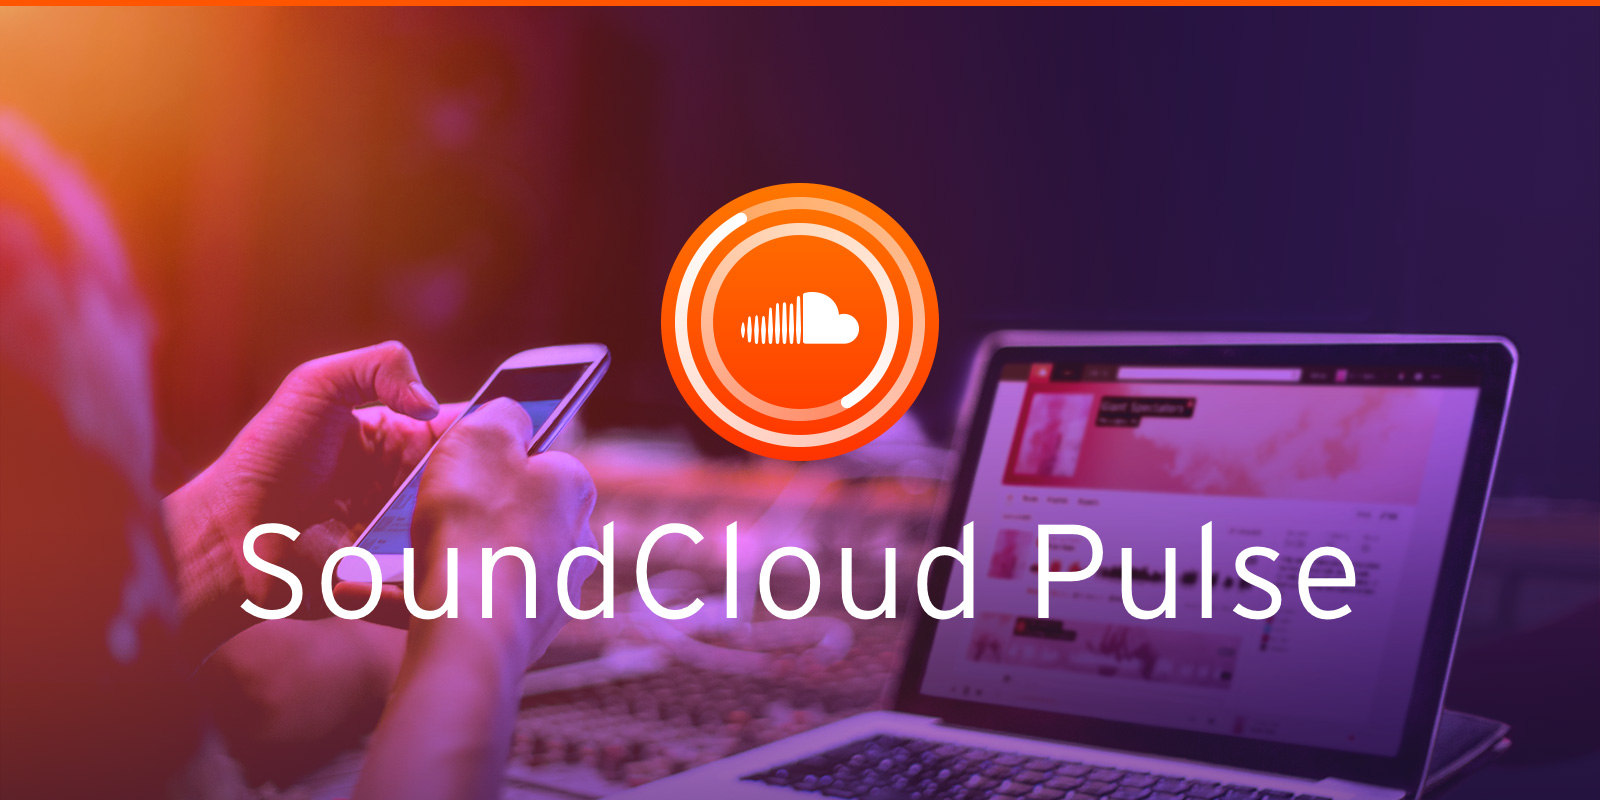 sound cloud pulse app